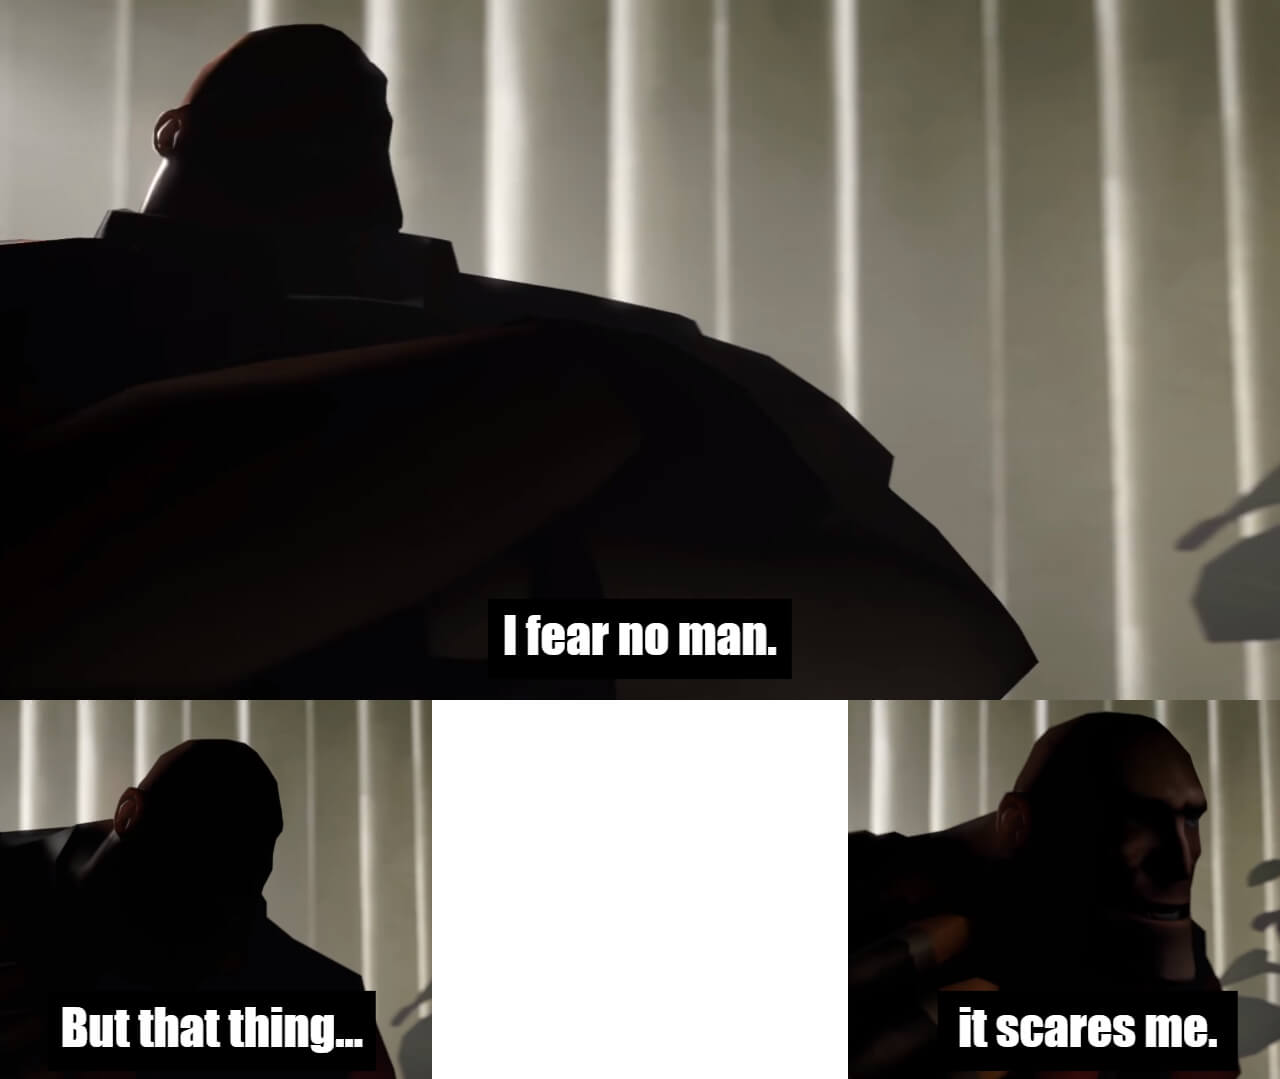 Ir a la pagina de la plantilla I fear no man | But that thing... | it scares me.